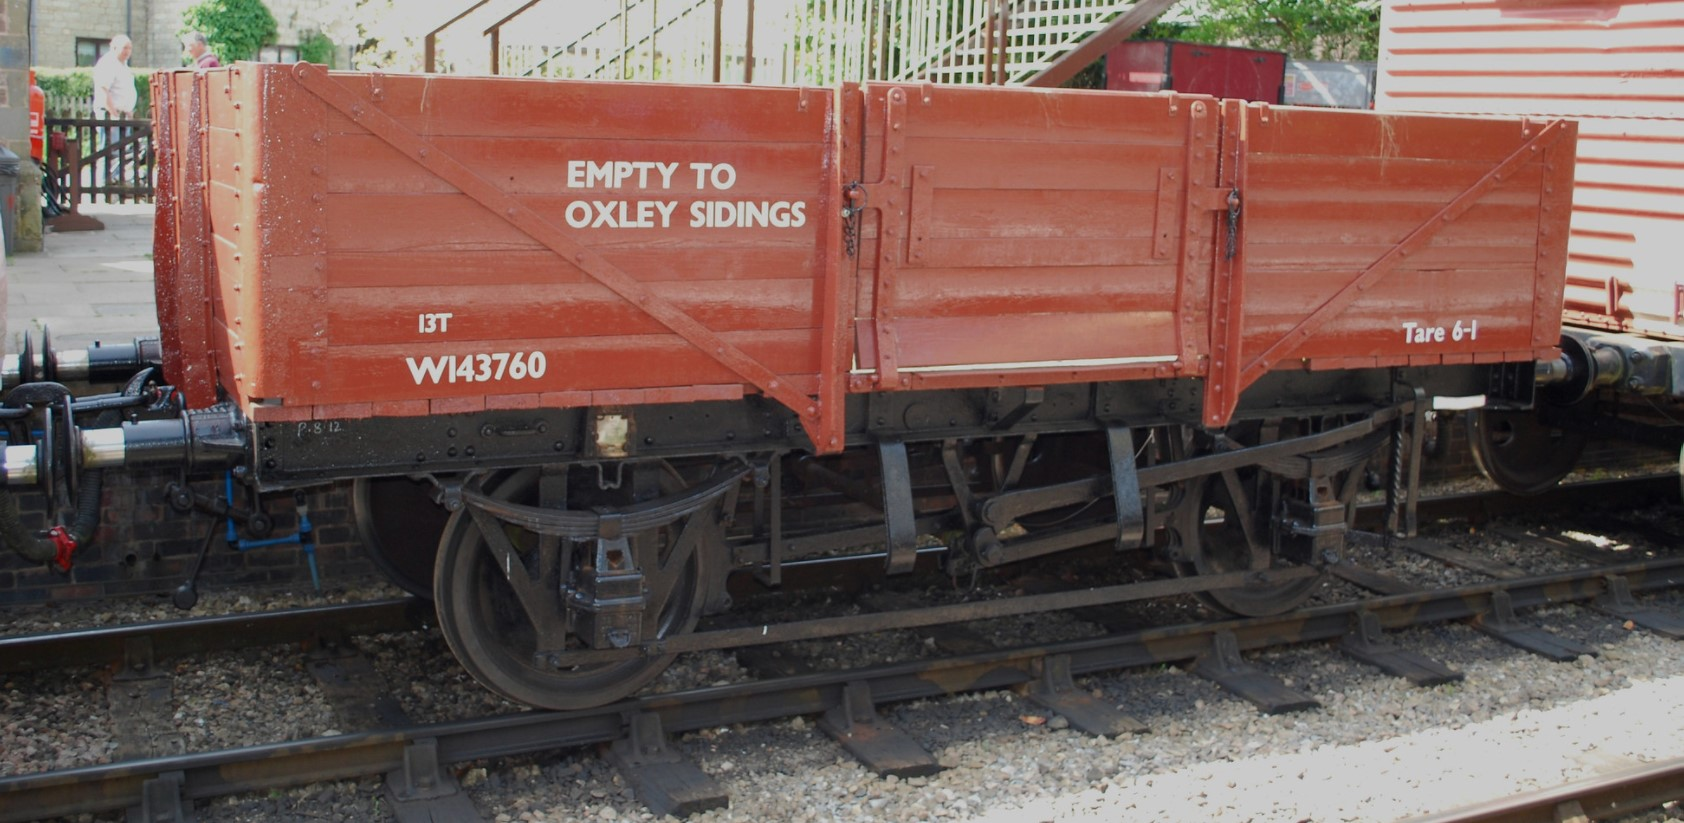 W143760 at Winchcombe on the Gloucestershire & Warwickshire Railway in September 2013. ©Hugh Llewelyn